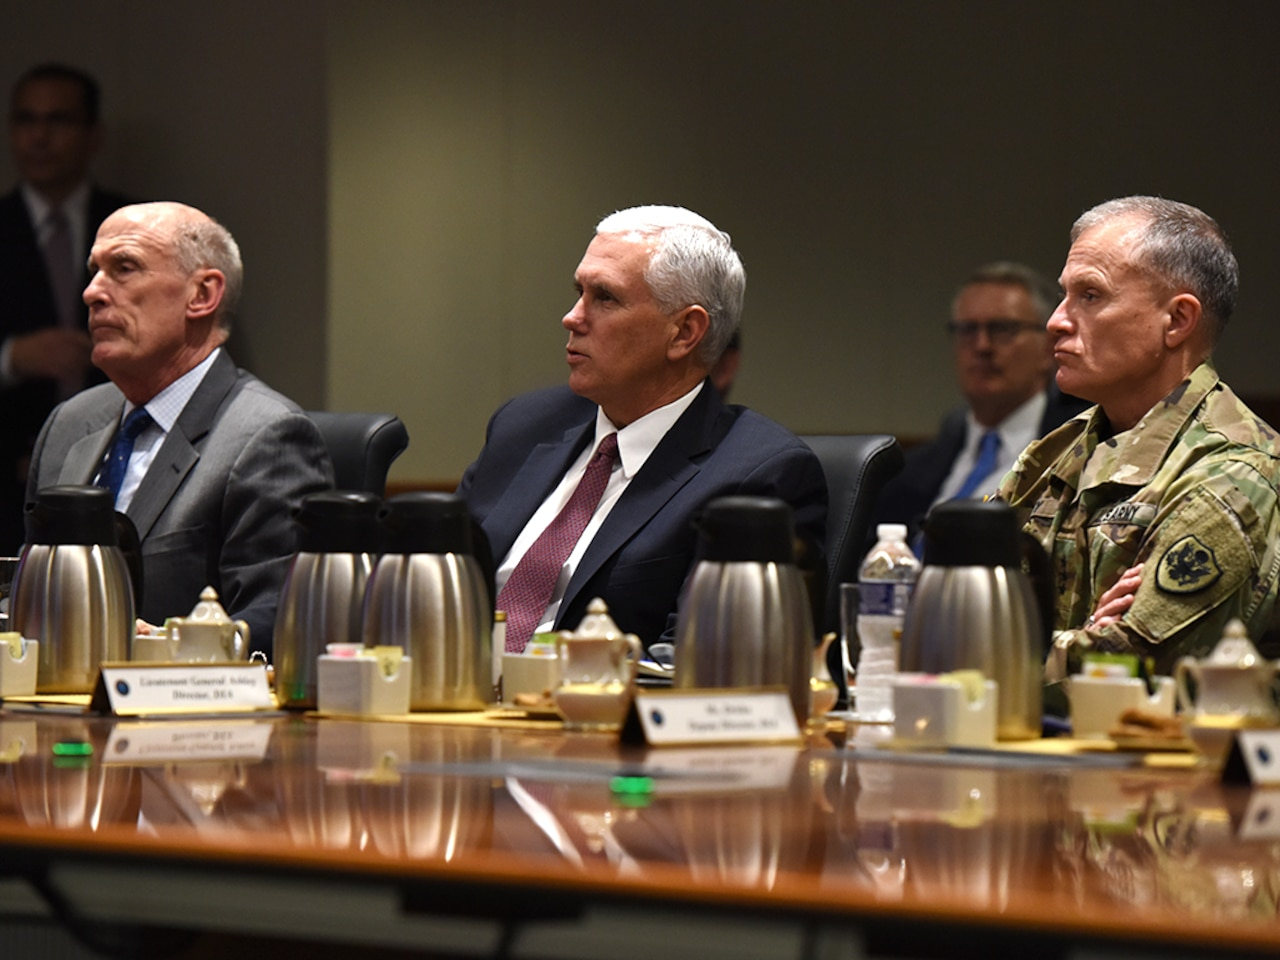 From left, Director of National Intelligence Dan Coats, Vice President Mike Pence and Defense Intelligence Agency Director Lt. Gen. Robert Ashley listen to an intelligence brief during the vice president's visit to DIA headquarters Nov. 6, at Joint Base Anacostia-Bolling in Washington, D.C.